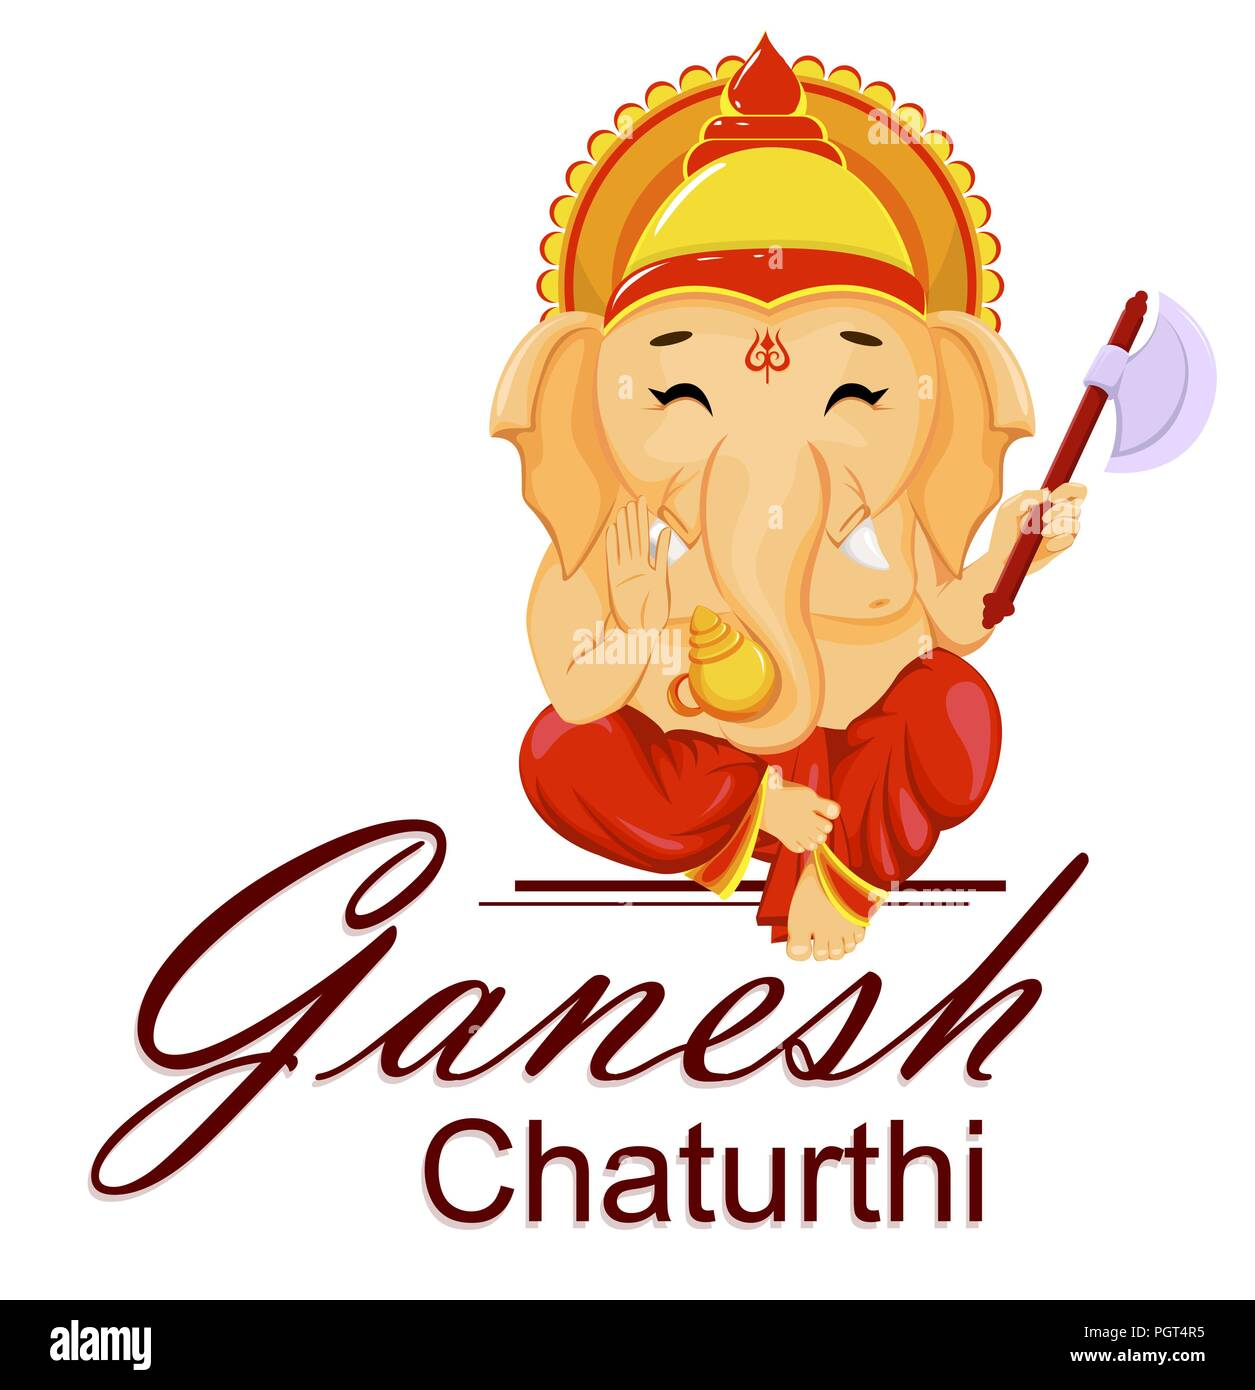 Happy Ganesh Chaturthi greeting card for traditional Indian festival. Lord Ganesha in cartoon style. Vector illustration. Stock Vector